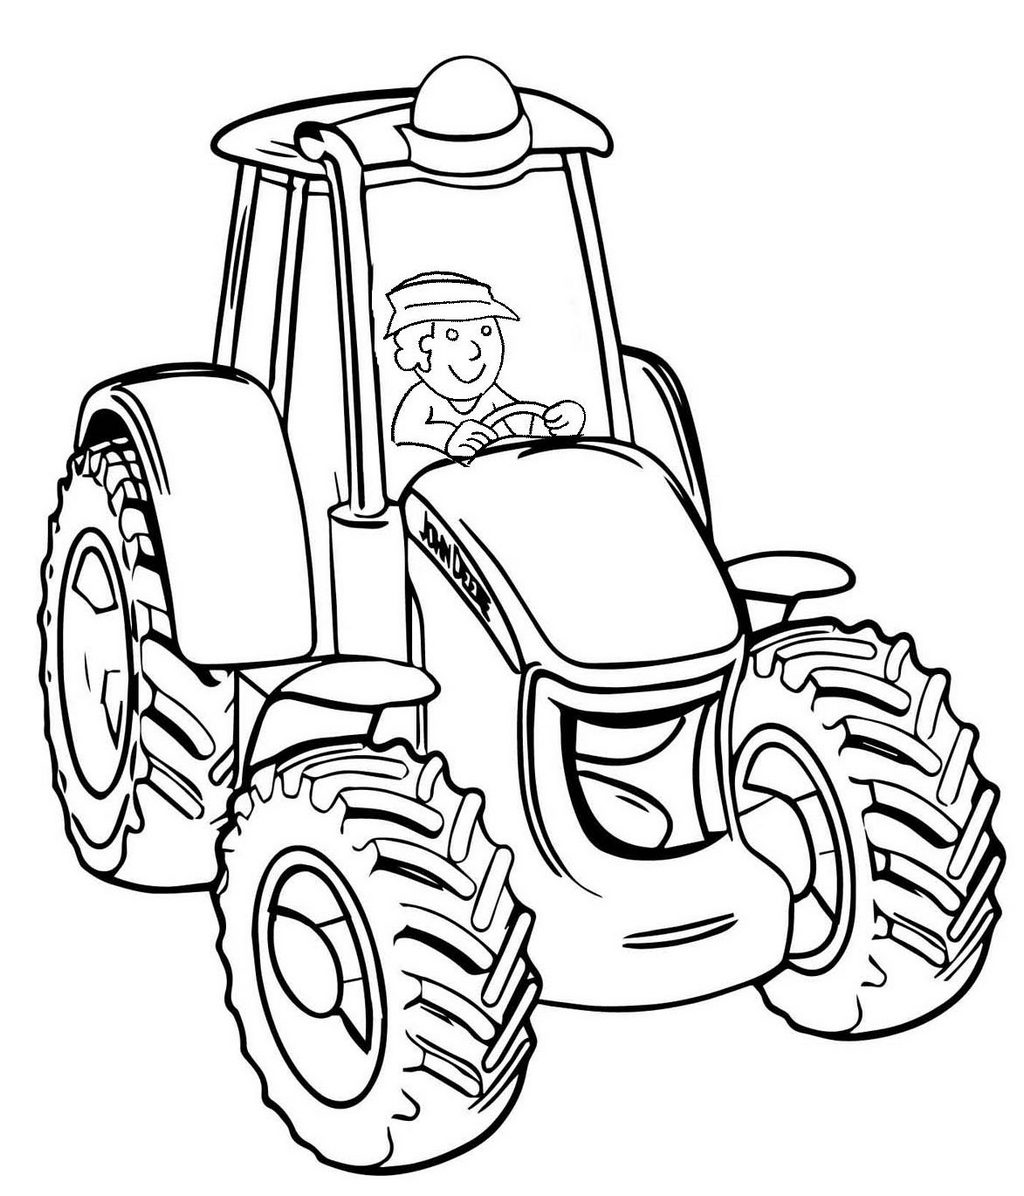 Operator Driving Tractor Machine Coloring Page